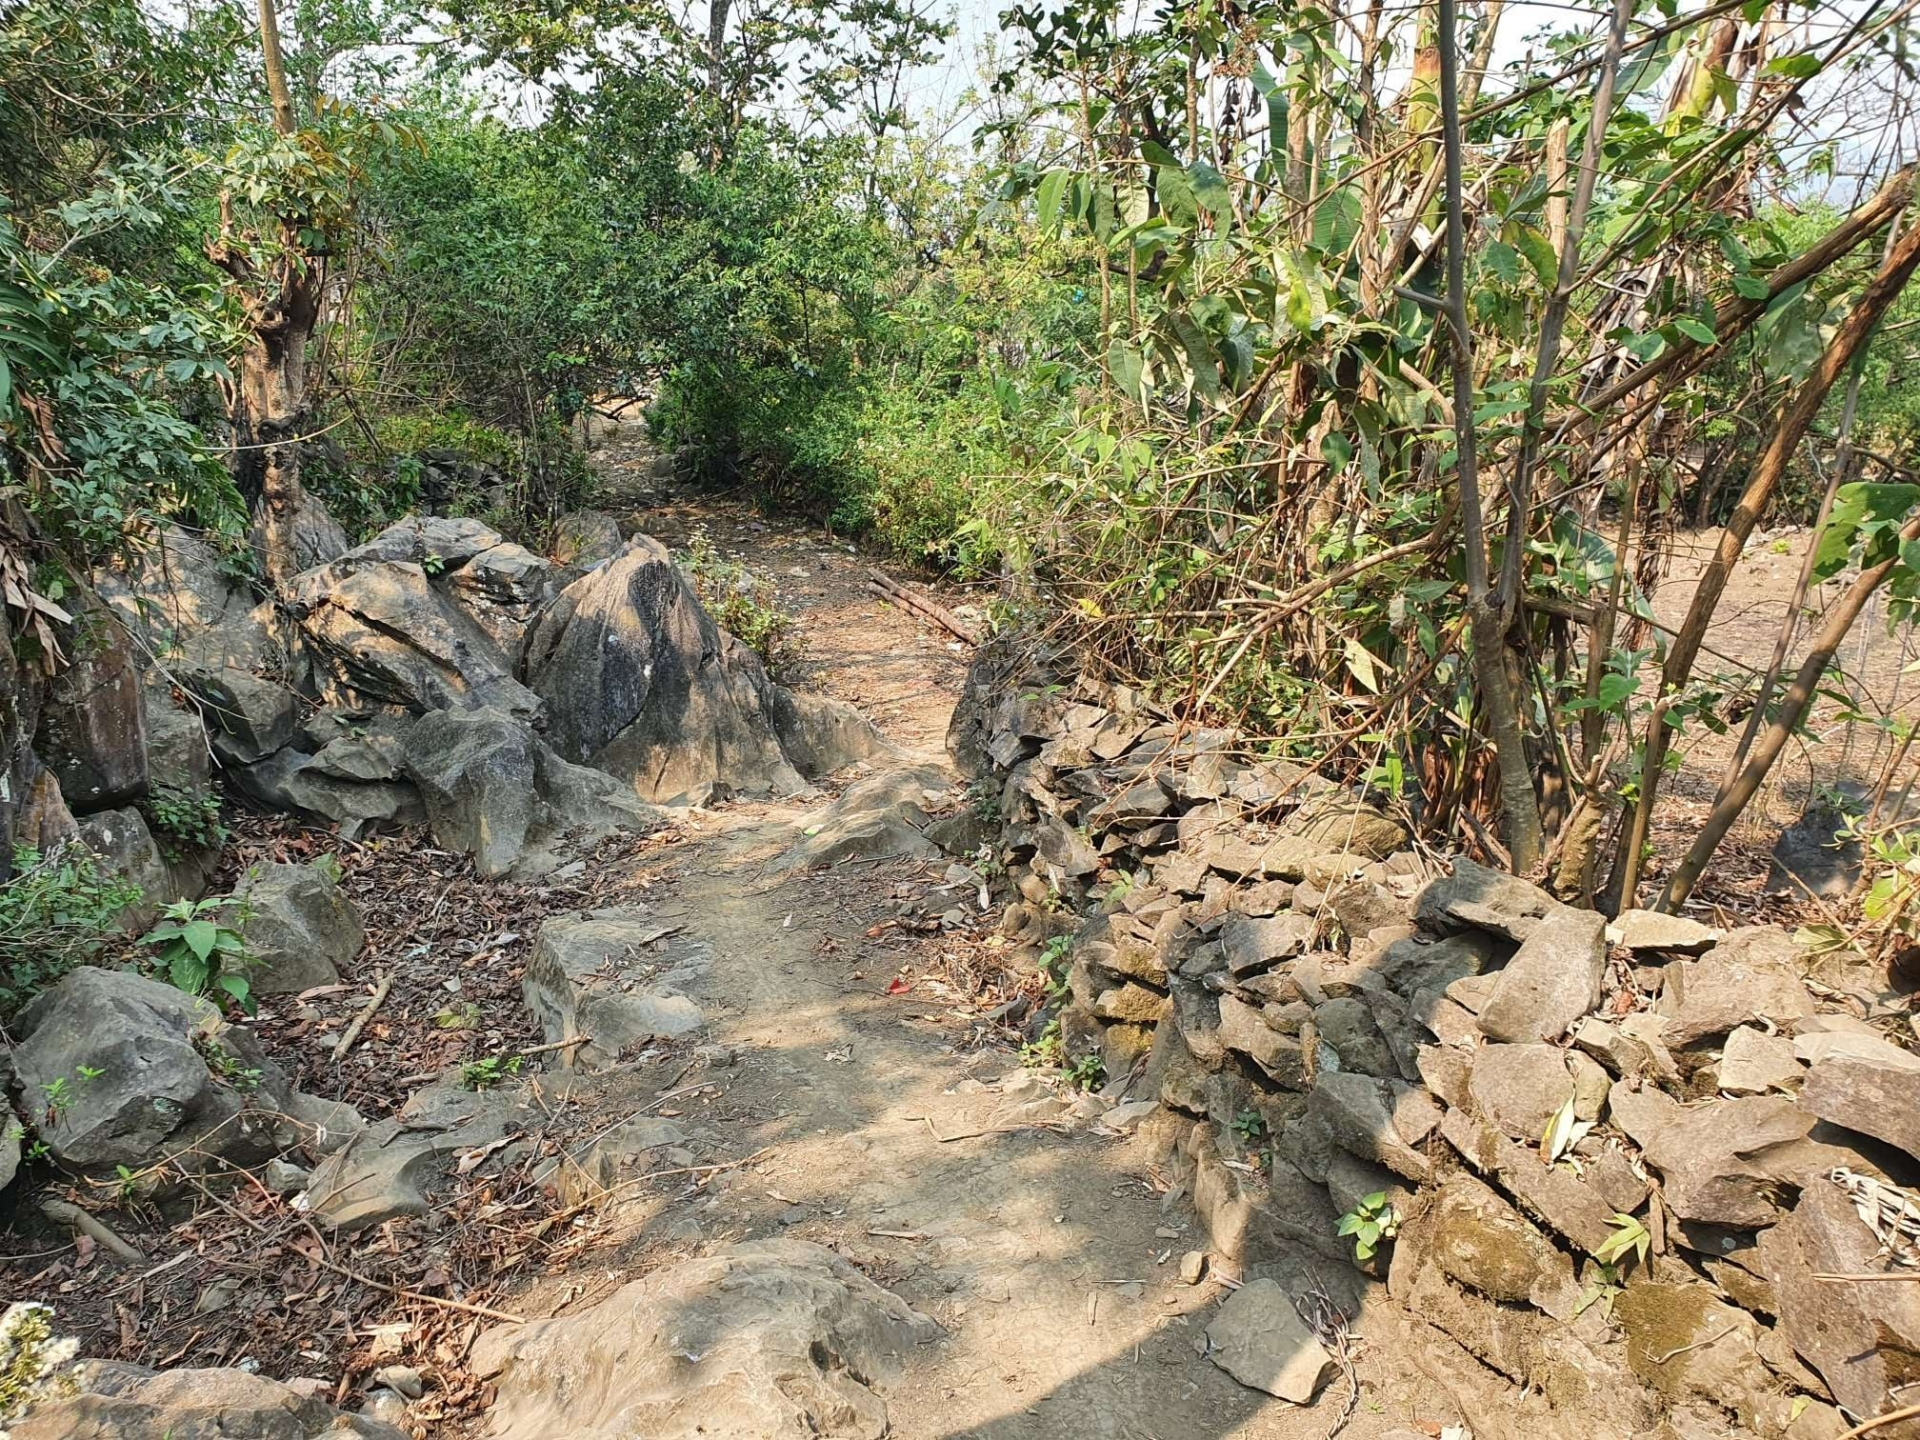 Before the road project, the old road was steep and rocky and would become muddy, especially during rainy days. Source: World Vision Vietnam